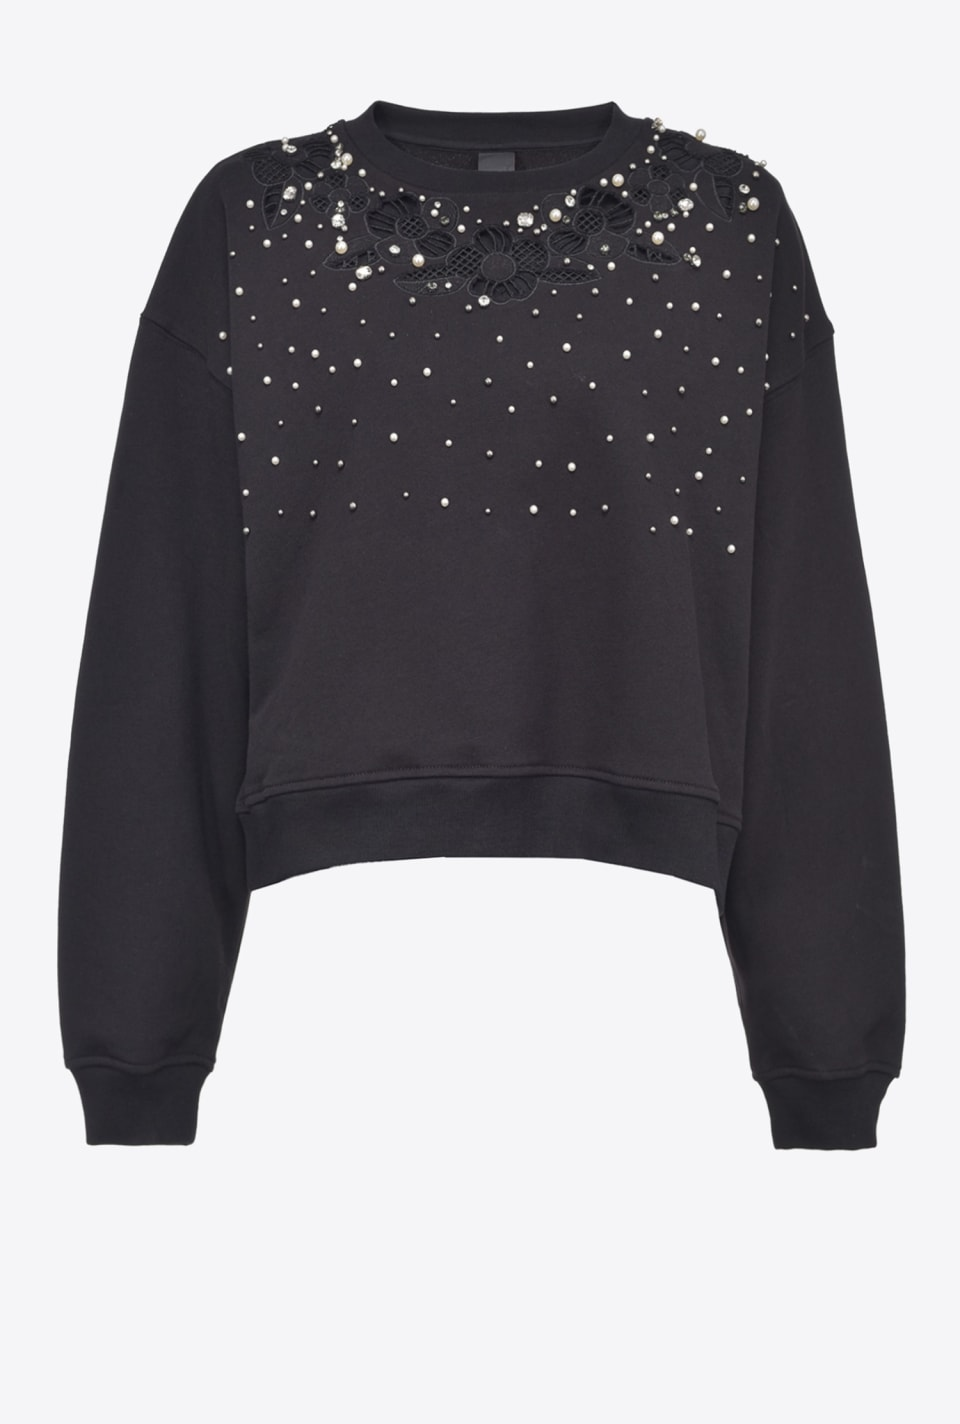 Sweatshirt with floral embroidery and pearls - Pinko